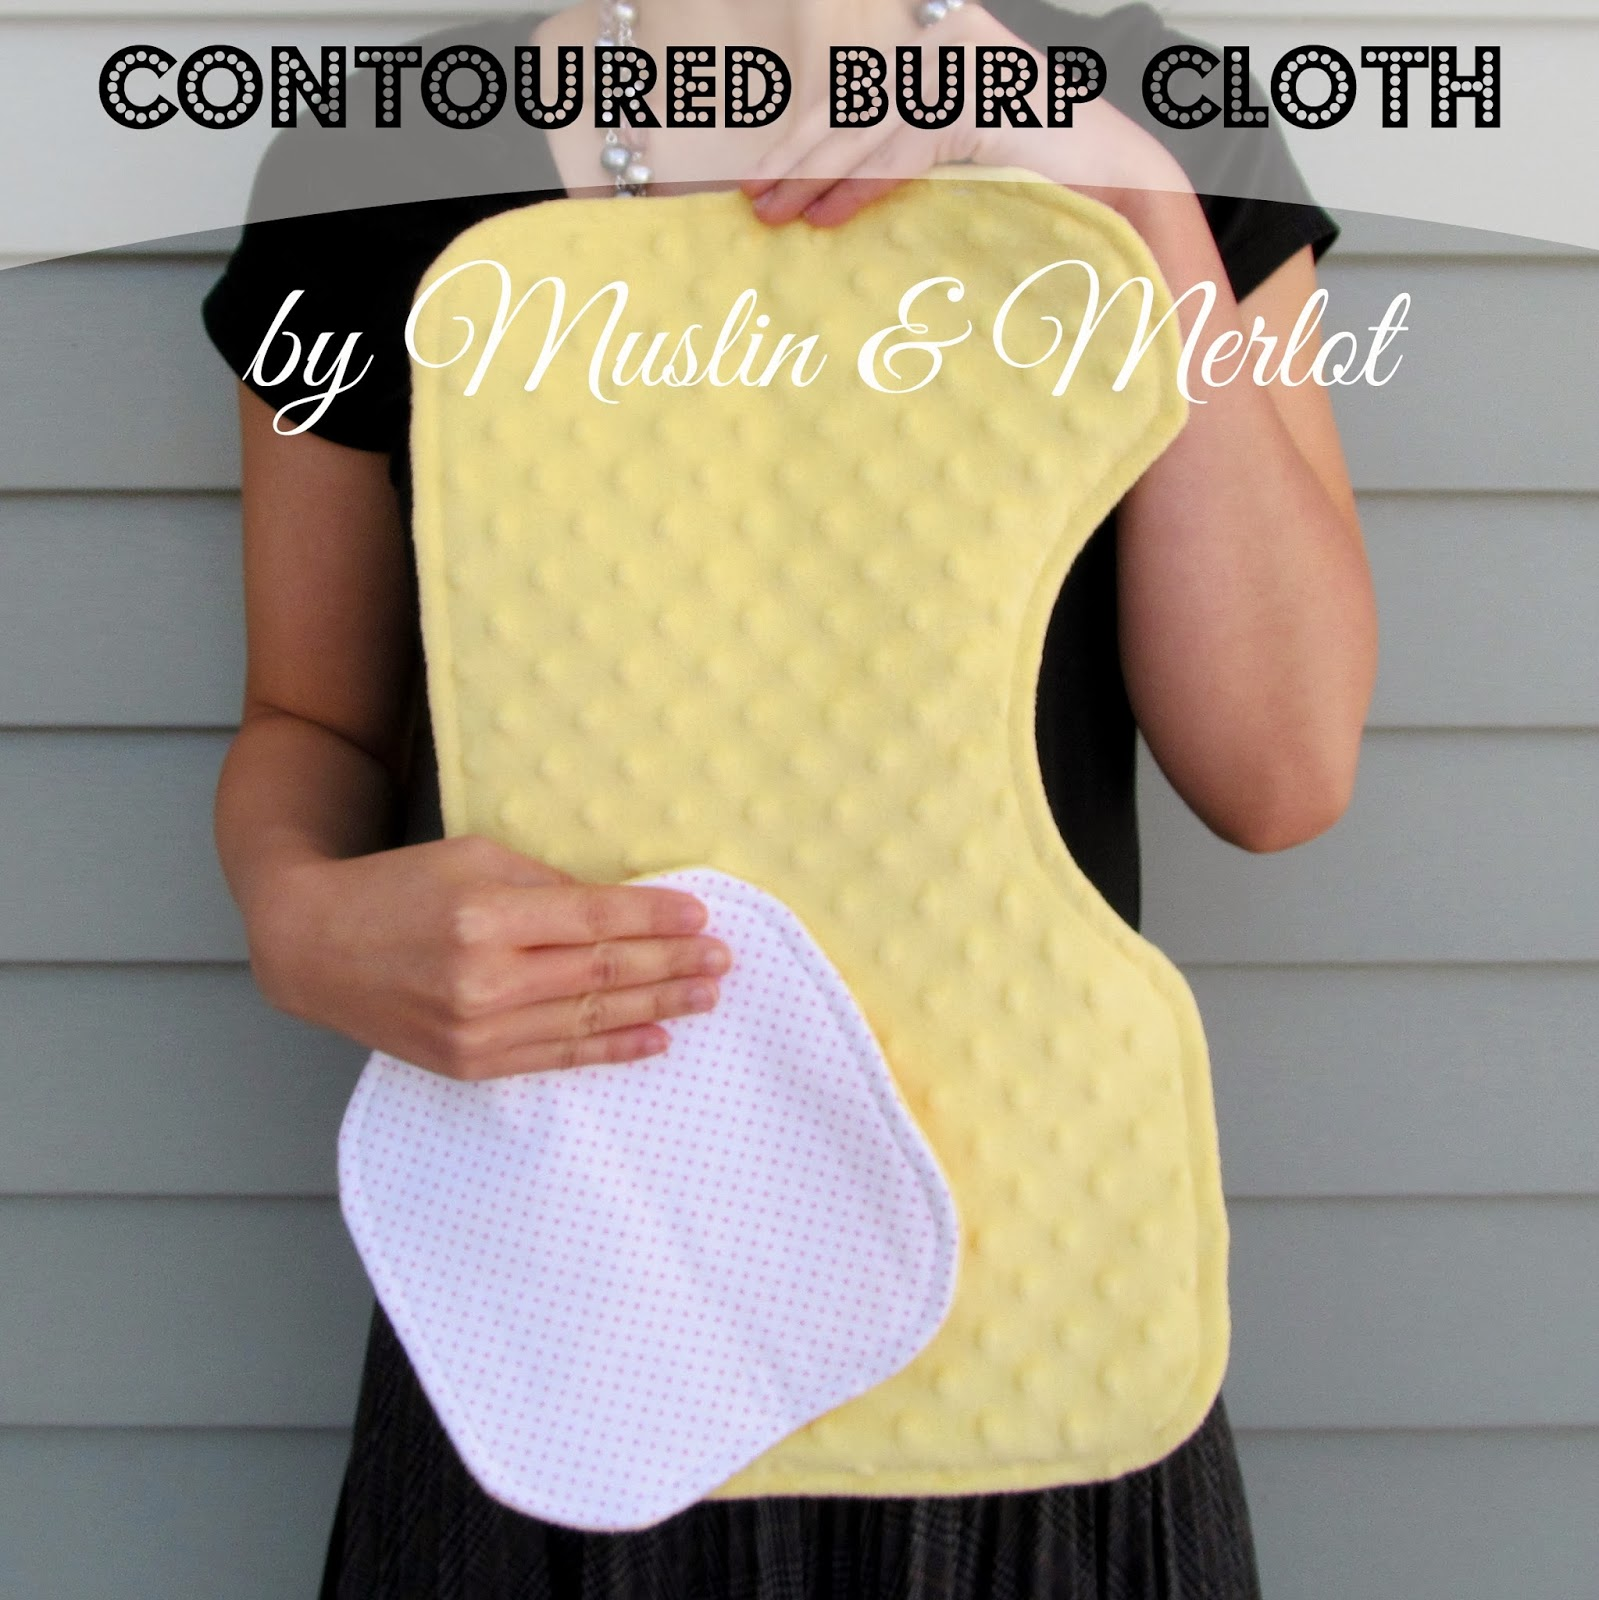 Contoured Burp Cloth by Muslin & Merlot. Free printable template!